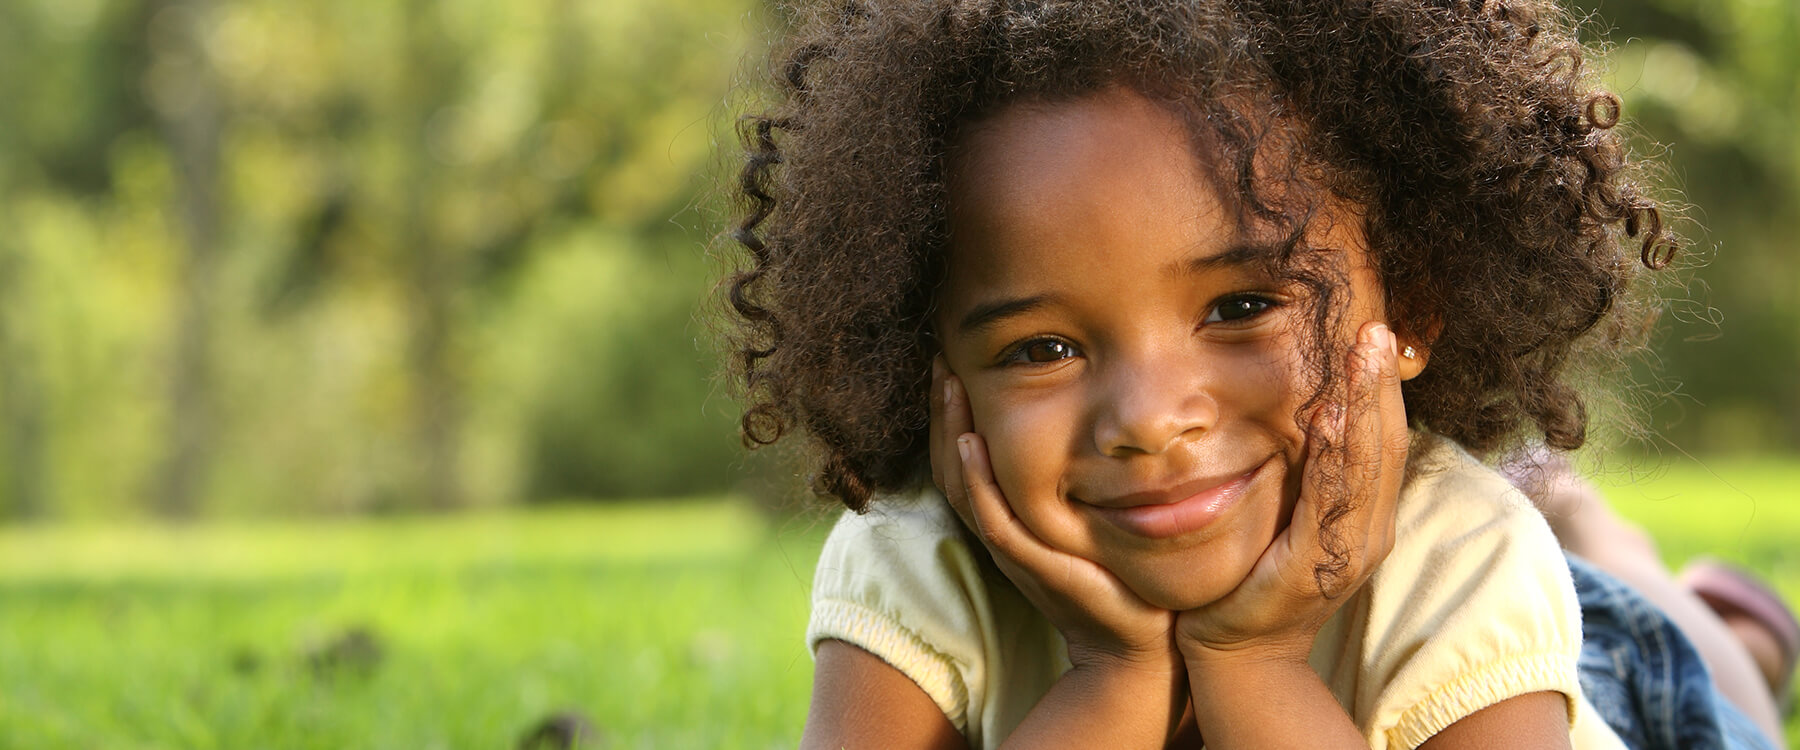 Black Girl in the Grass - Pediatric Dentistry in Gallatin, TN